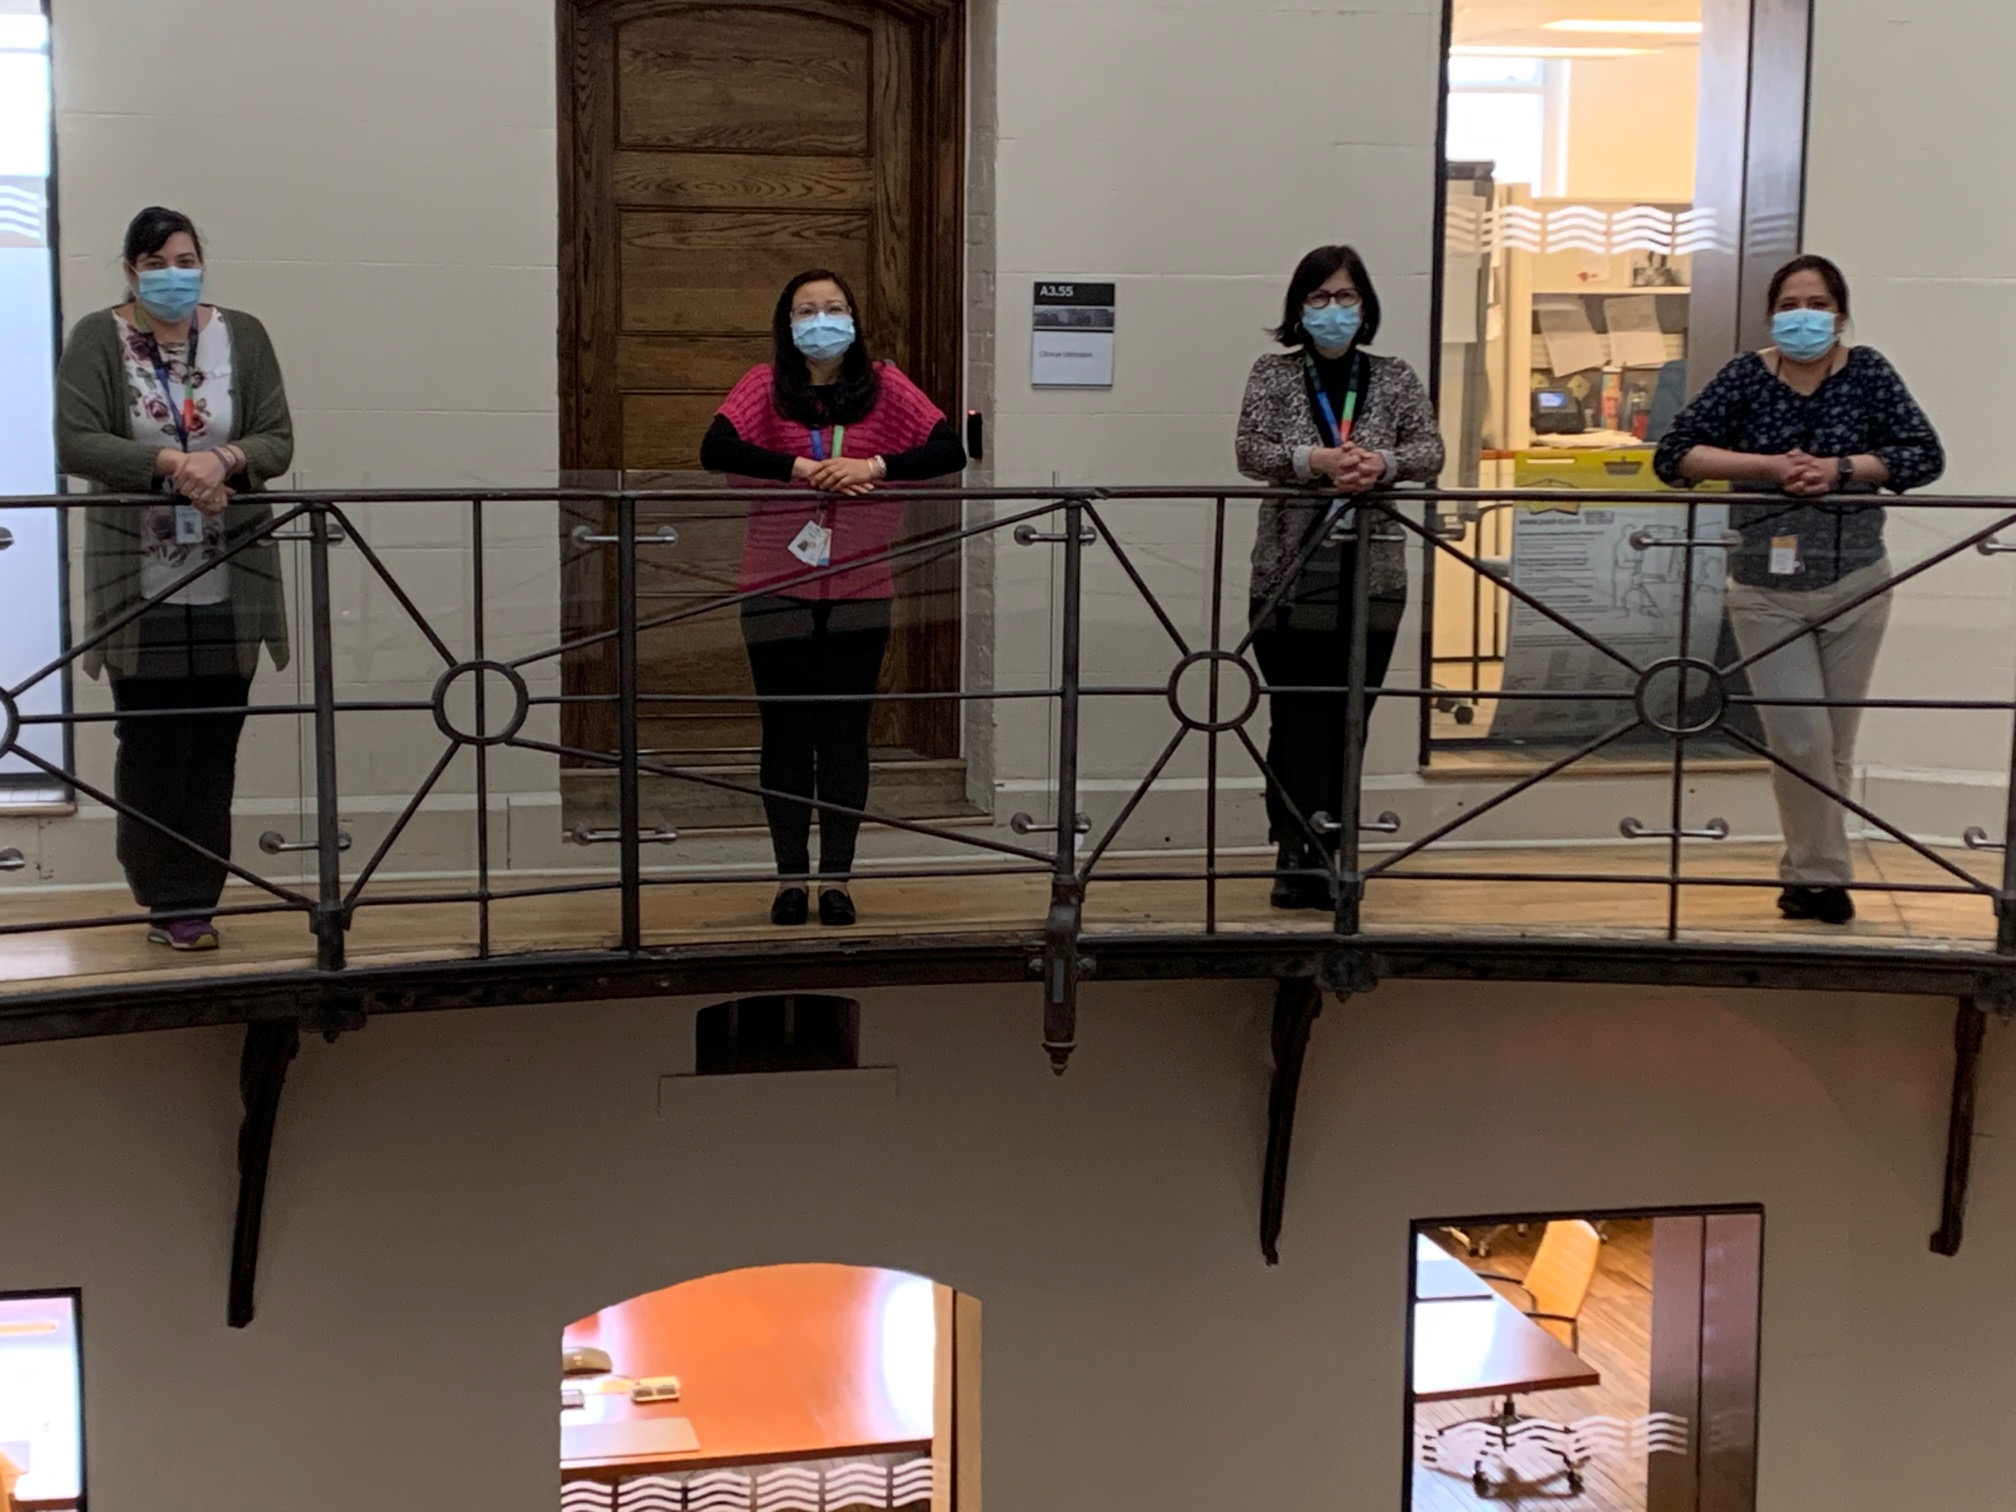 Four hospital employees wearing masks standing on  a second-floor walk way with an iron railing. They are  looking at the camera.